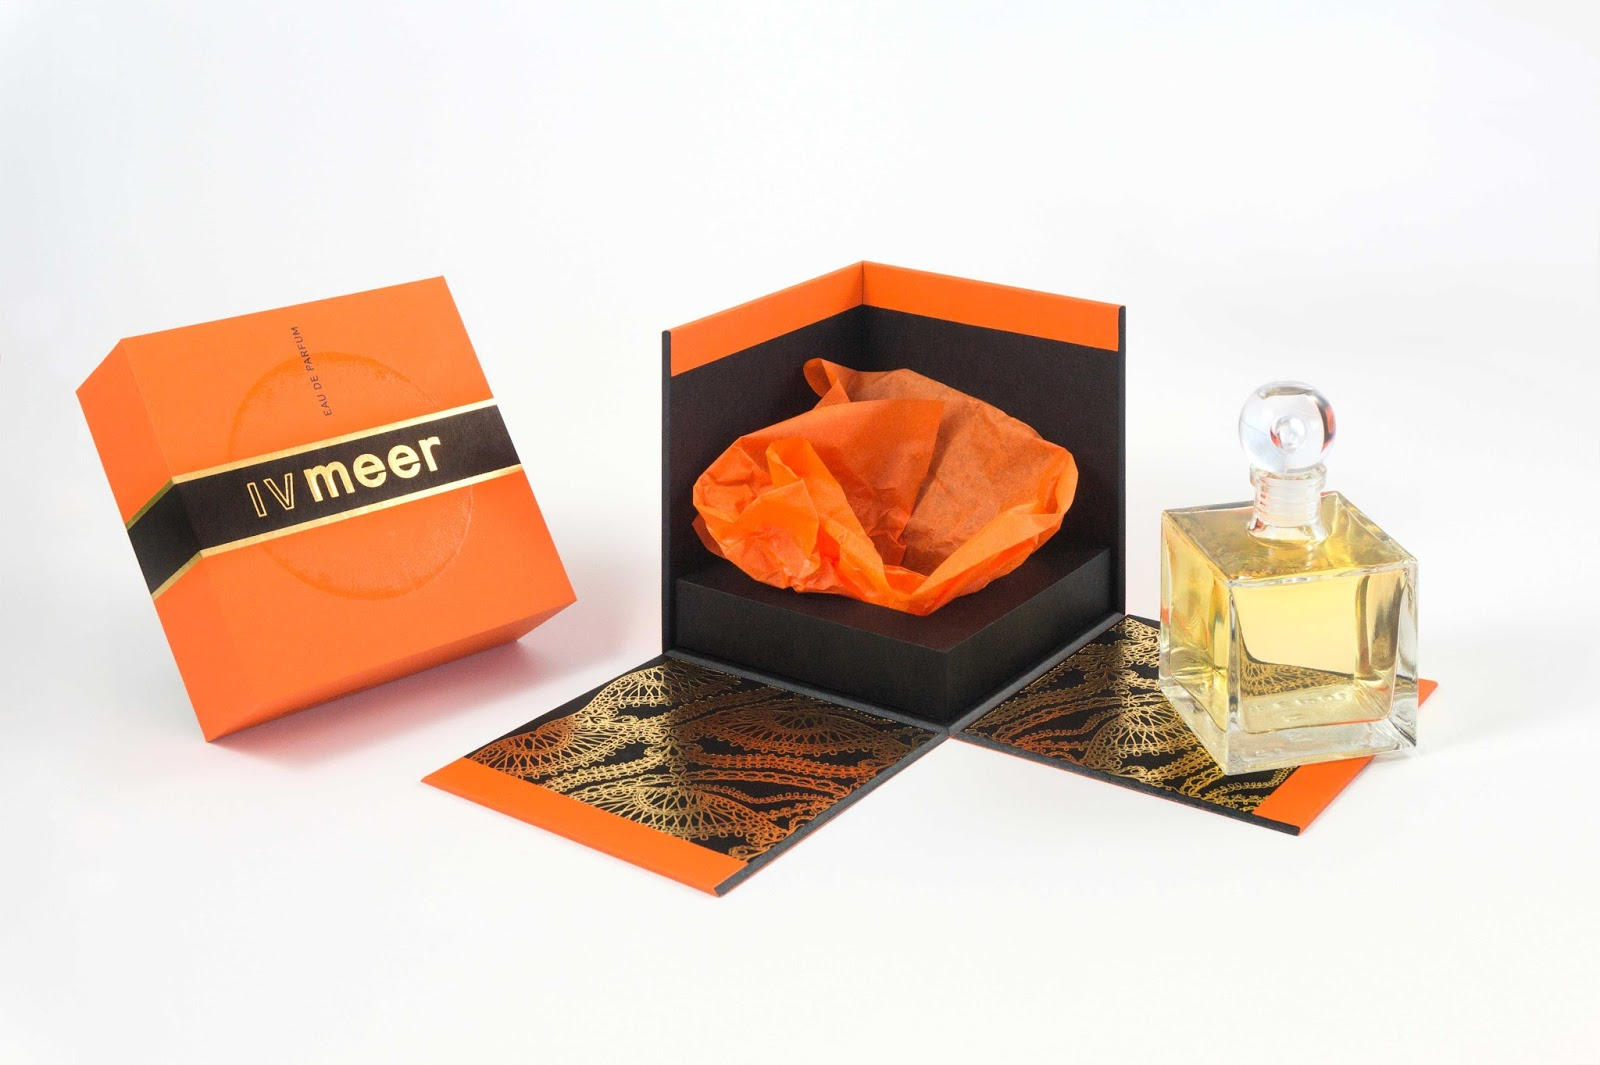 Ivmeer A Luxury Packaging Concept On Packaging Of The